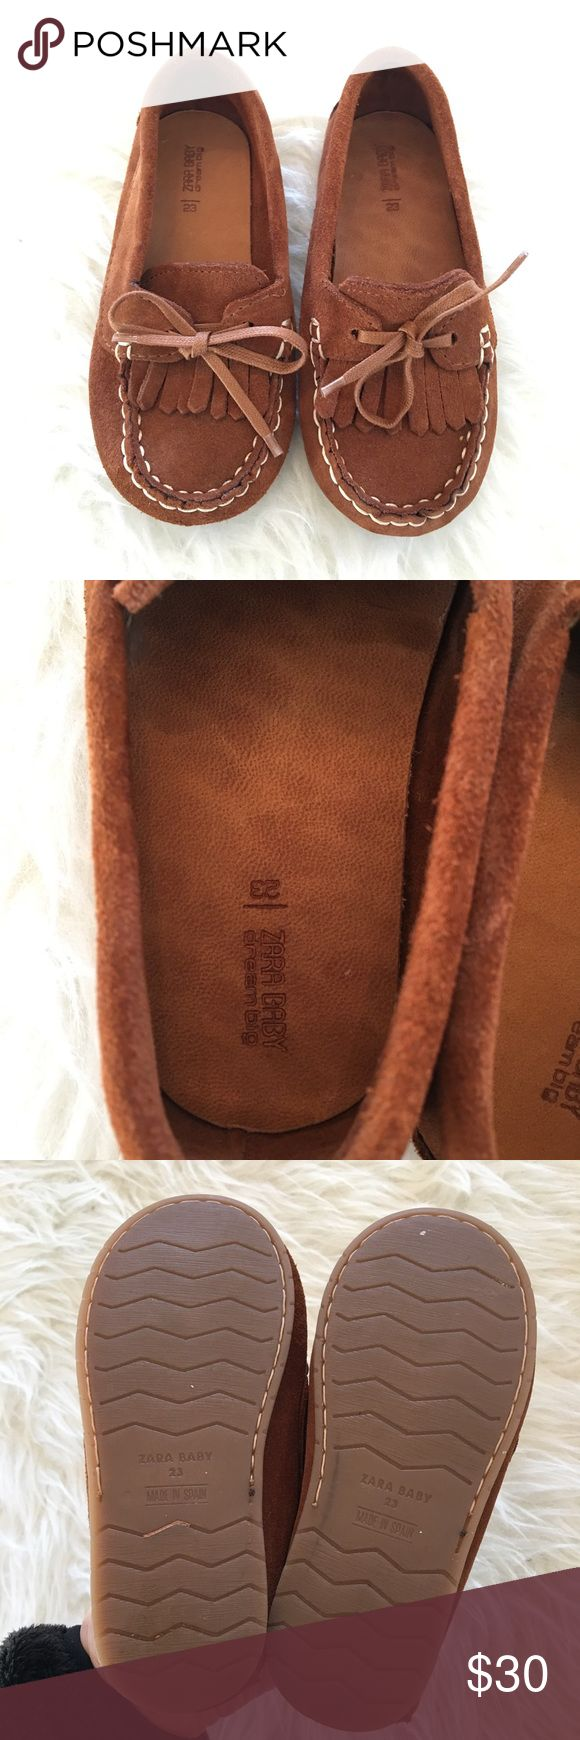 """Zara Baby Boy Suede Moccasin Loafer Fringe Shoes Zara Baby Boy Suede Moccasin Loafer Fringe Shoes Size 23.   Brown suede loafers with fringe and ties.  Rubber sole. Worn once if at all.    Sole measures a bit over 6"""". Zara Shoes Dress Shoes"""